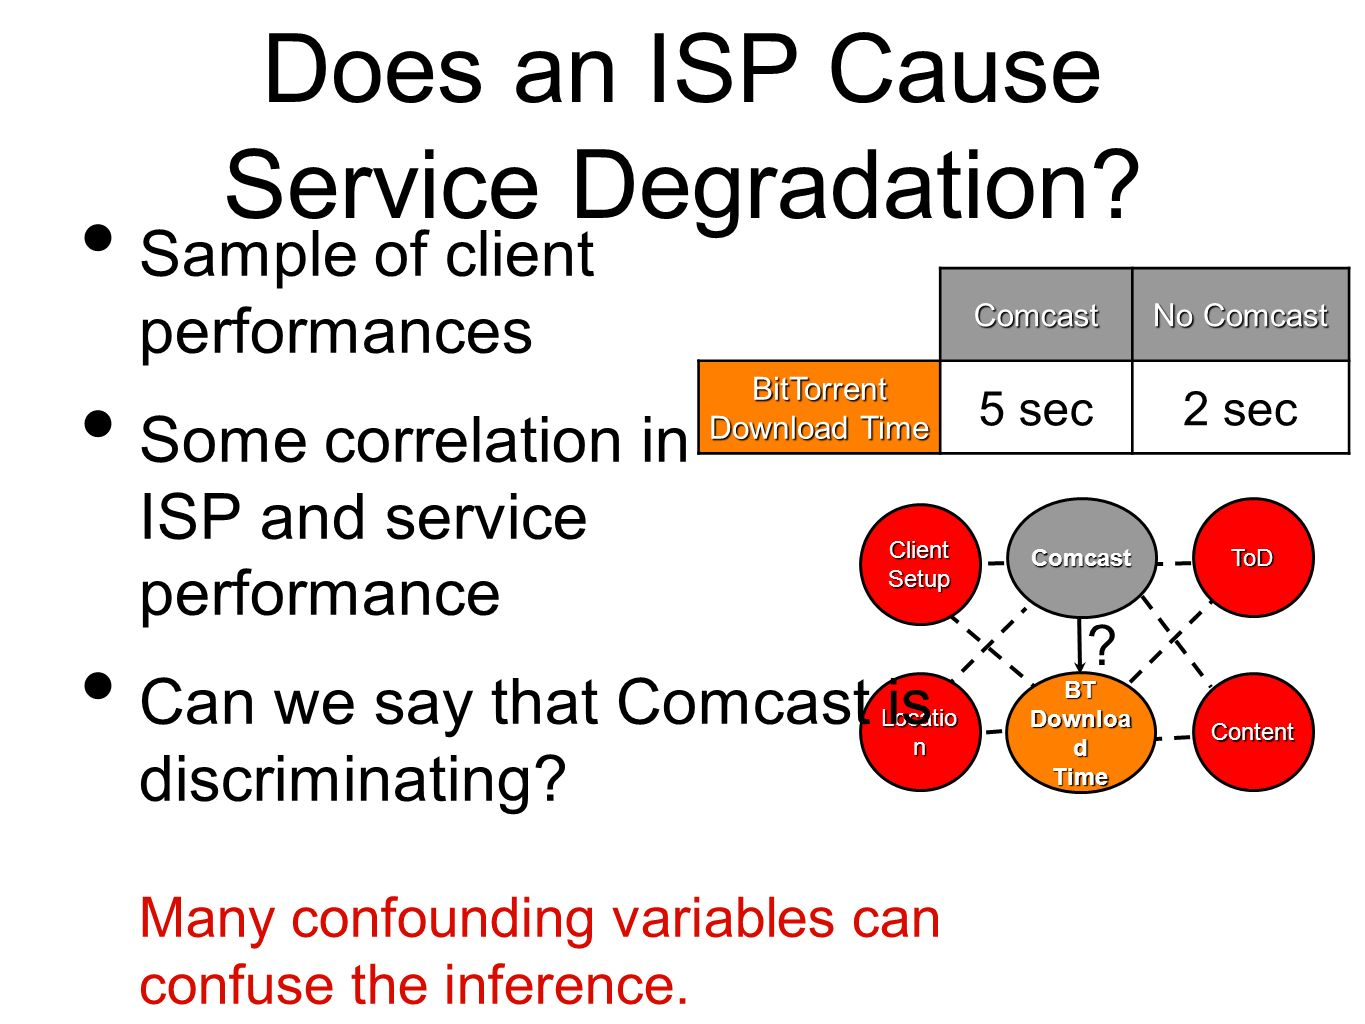 Does an ISP Cause Service Degradation.